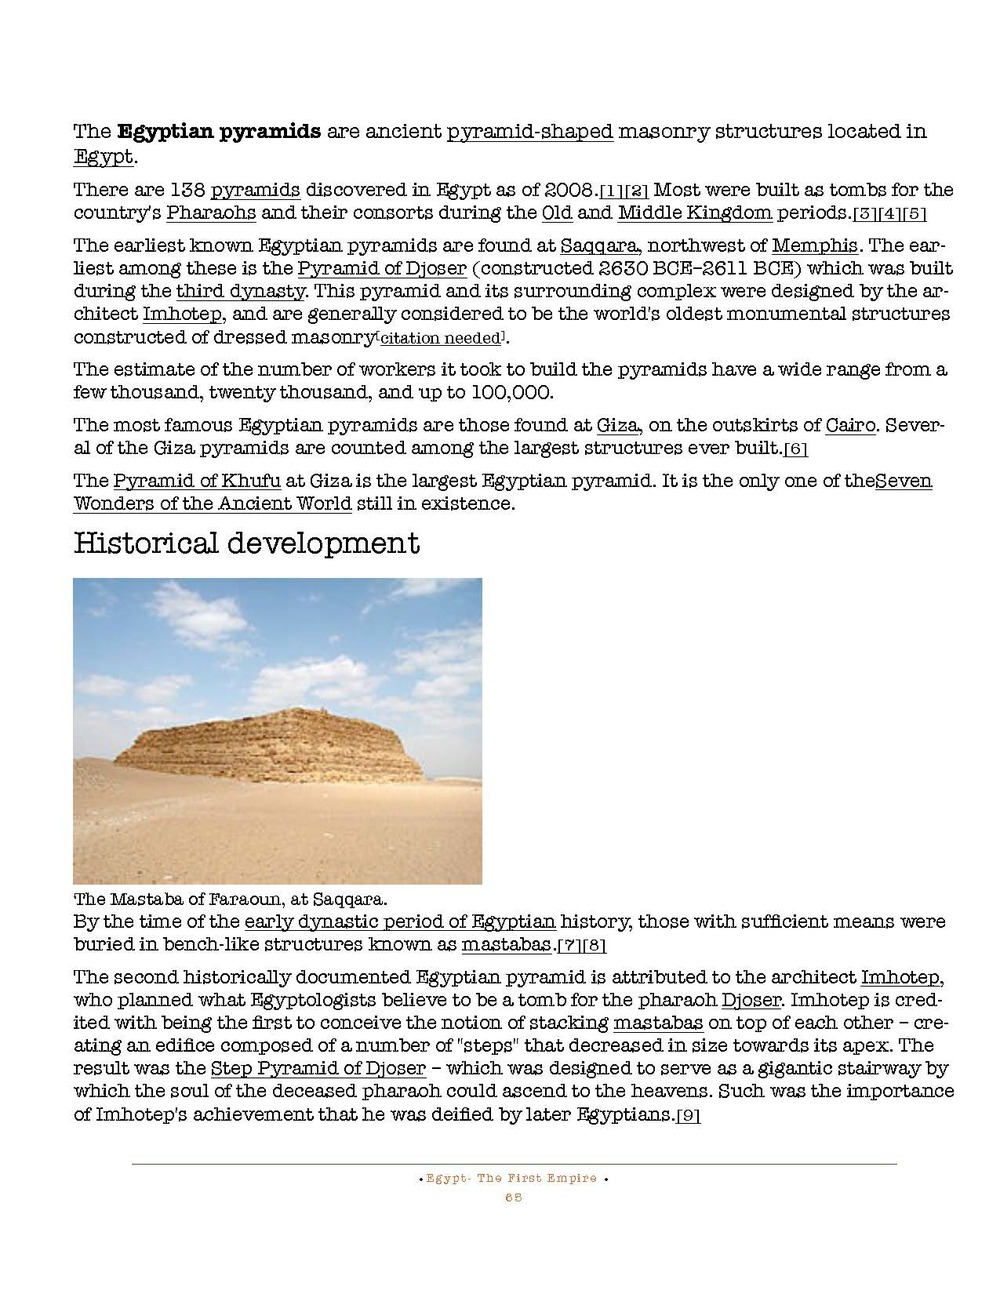 HOCE- Egypt  (First Empire) Notes_Page_065.jpg